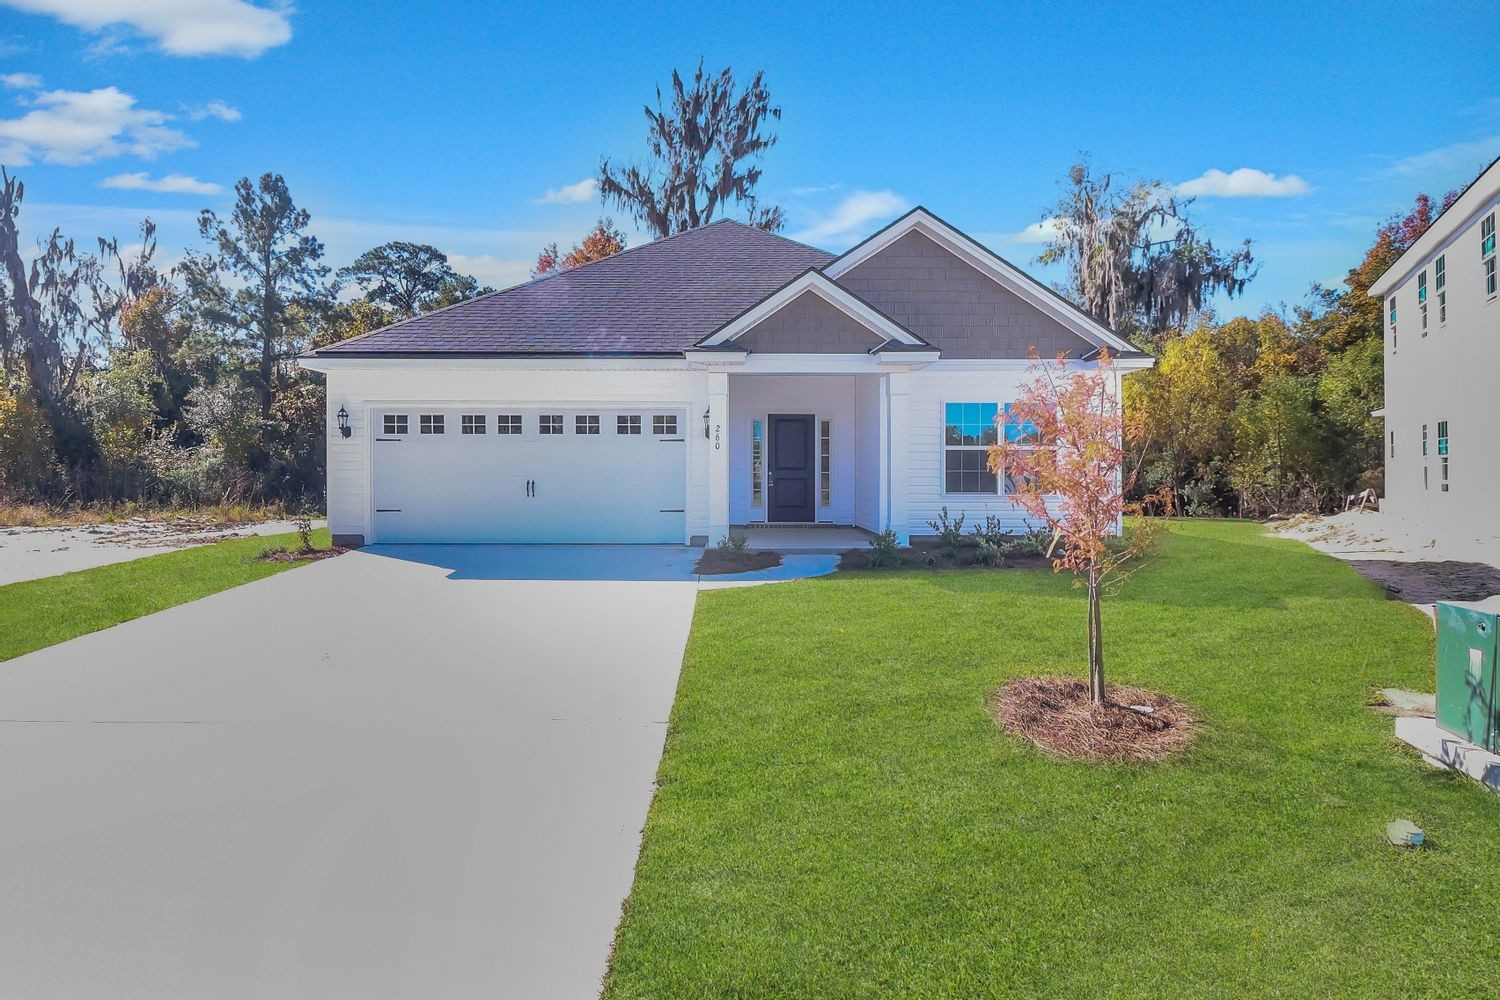 Move In Ready New Home In Dunham Marsh- The Villas Community